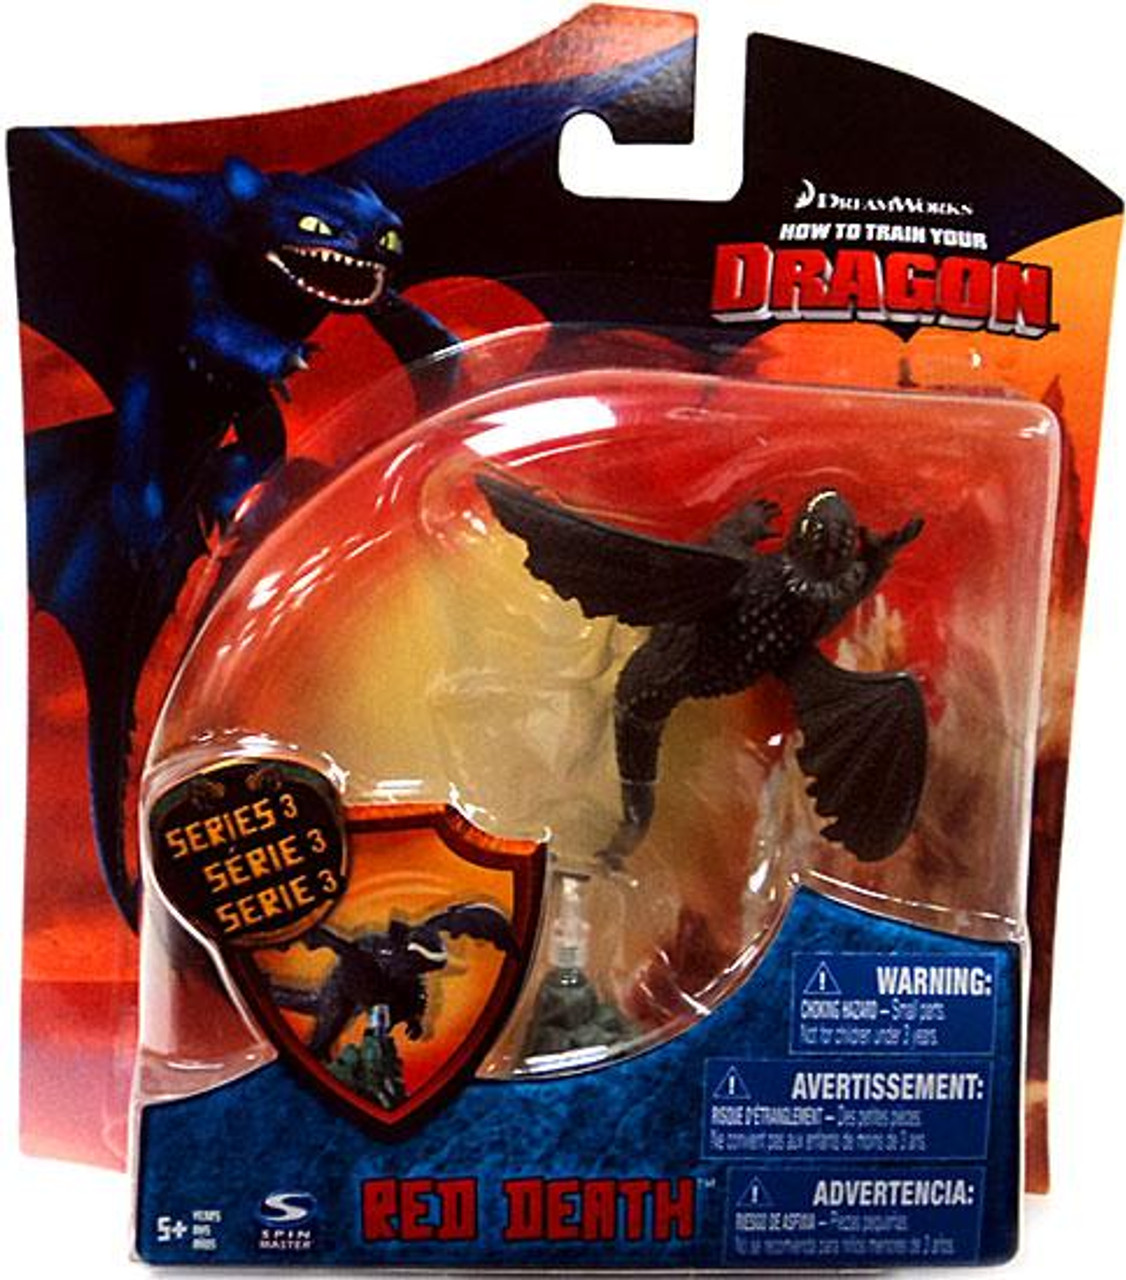 How to train your dragon series 3 red death 4 action figure spin how to train your dragon series 3 red death 4 action figure spin master toywiz ccuart Choice Image